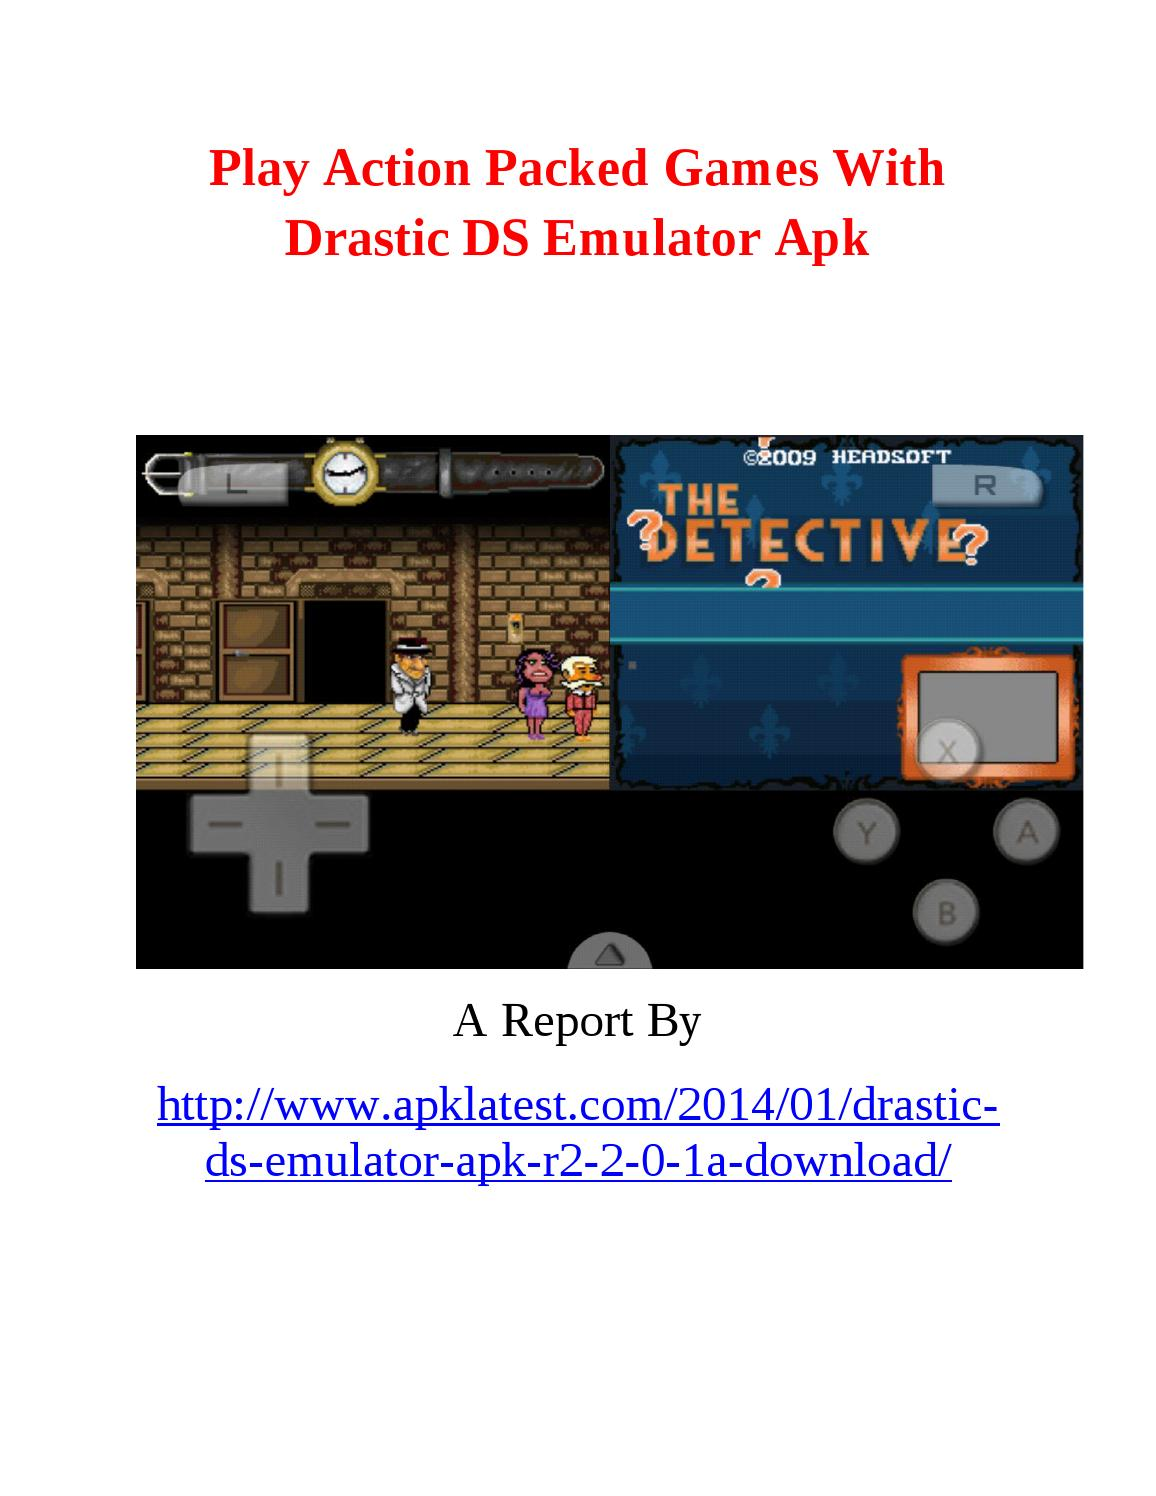 ⚡ Drastic ds emulator r2 5 1 2a apk cracked | DraStic DS Emulator